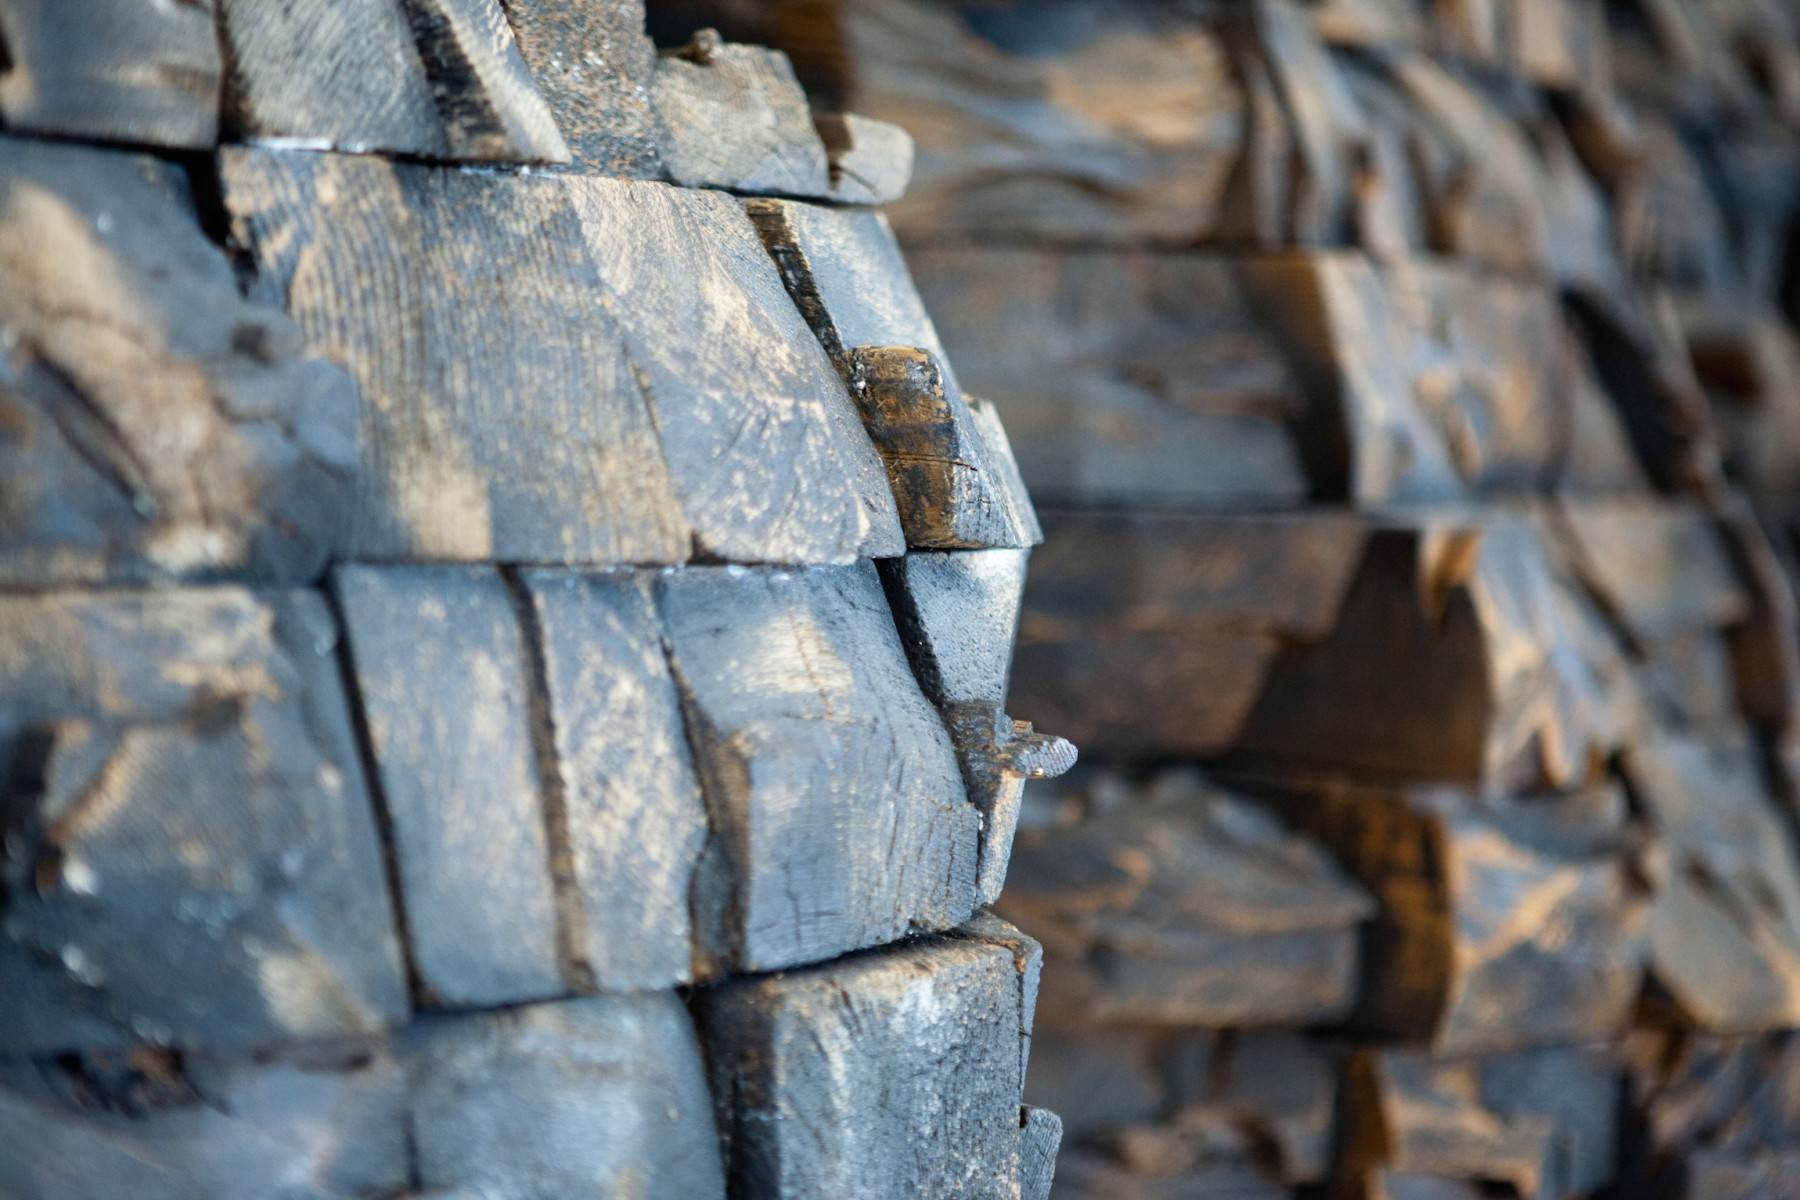 Detail of seven mountain shaped objects made from wood blocks